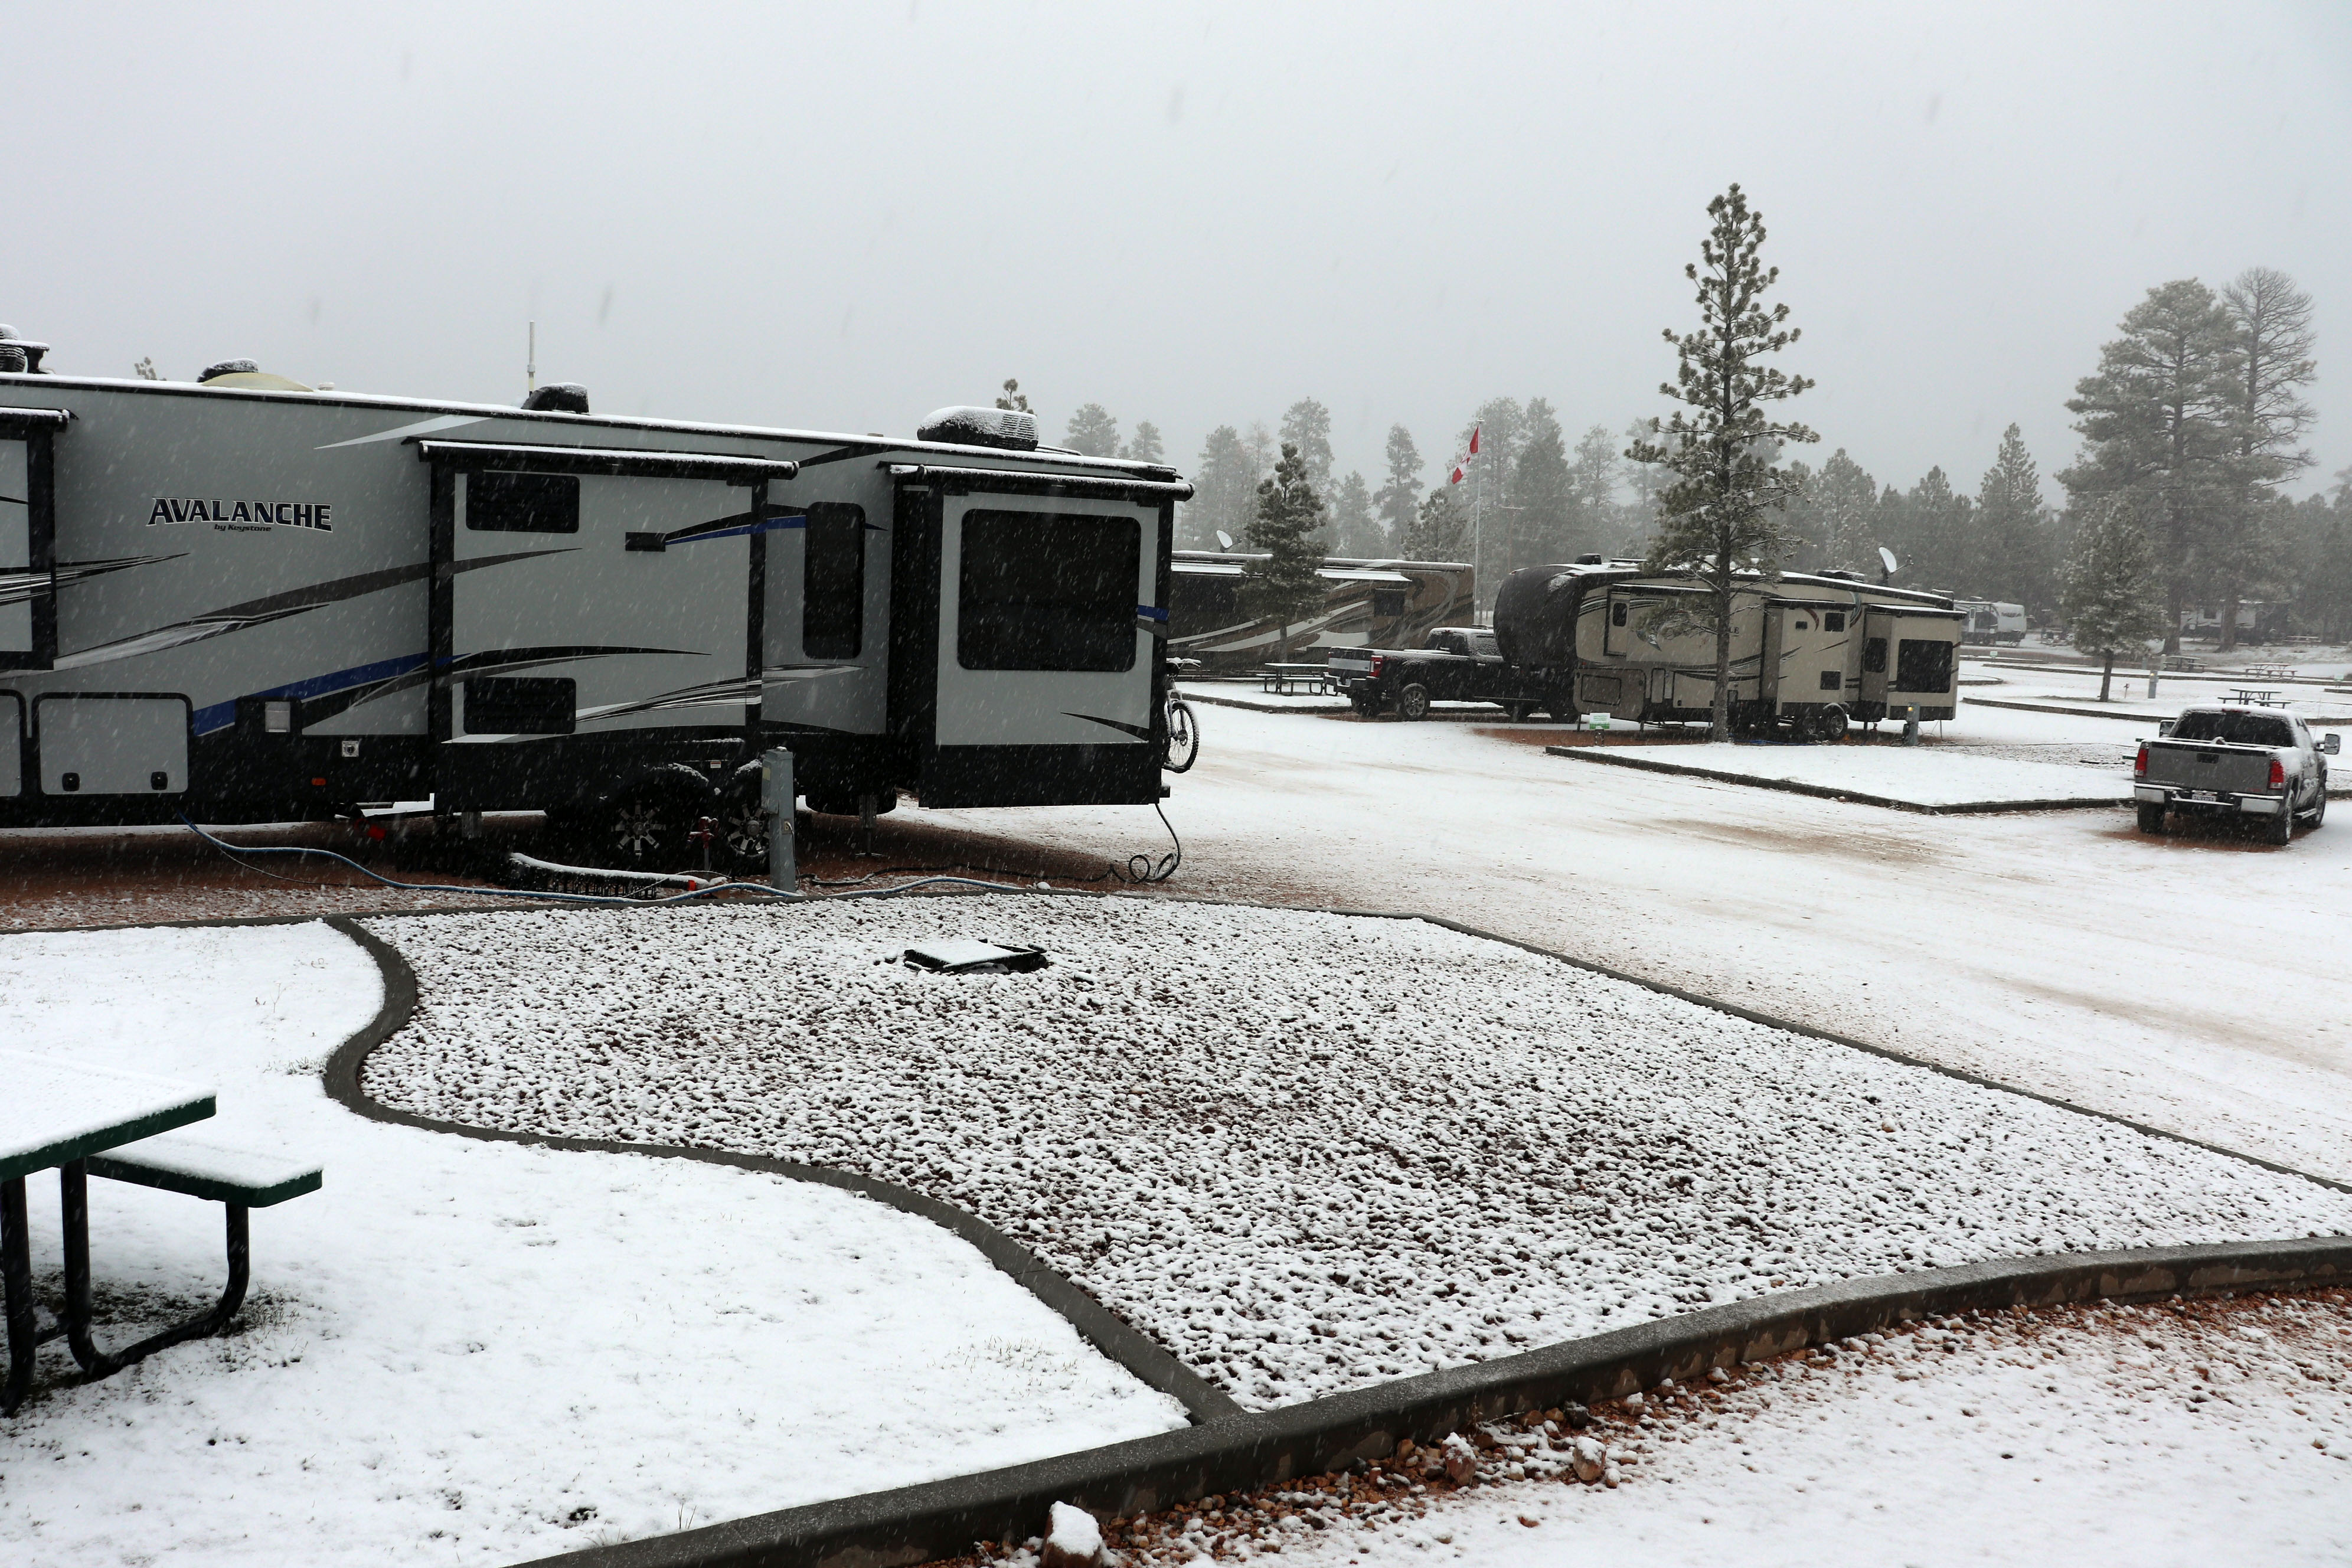 Utah Bryce Canyon Ruby S Inn Rv Park Itchy Feet And An Rv